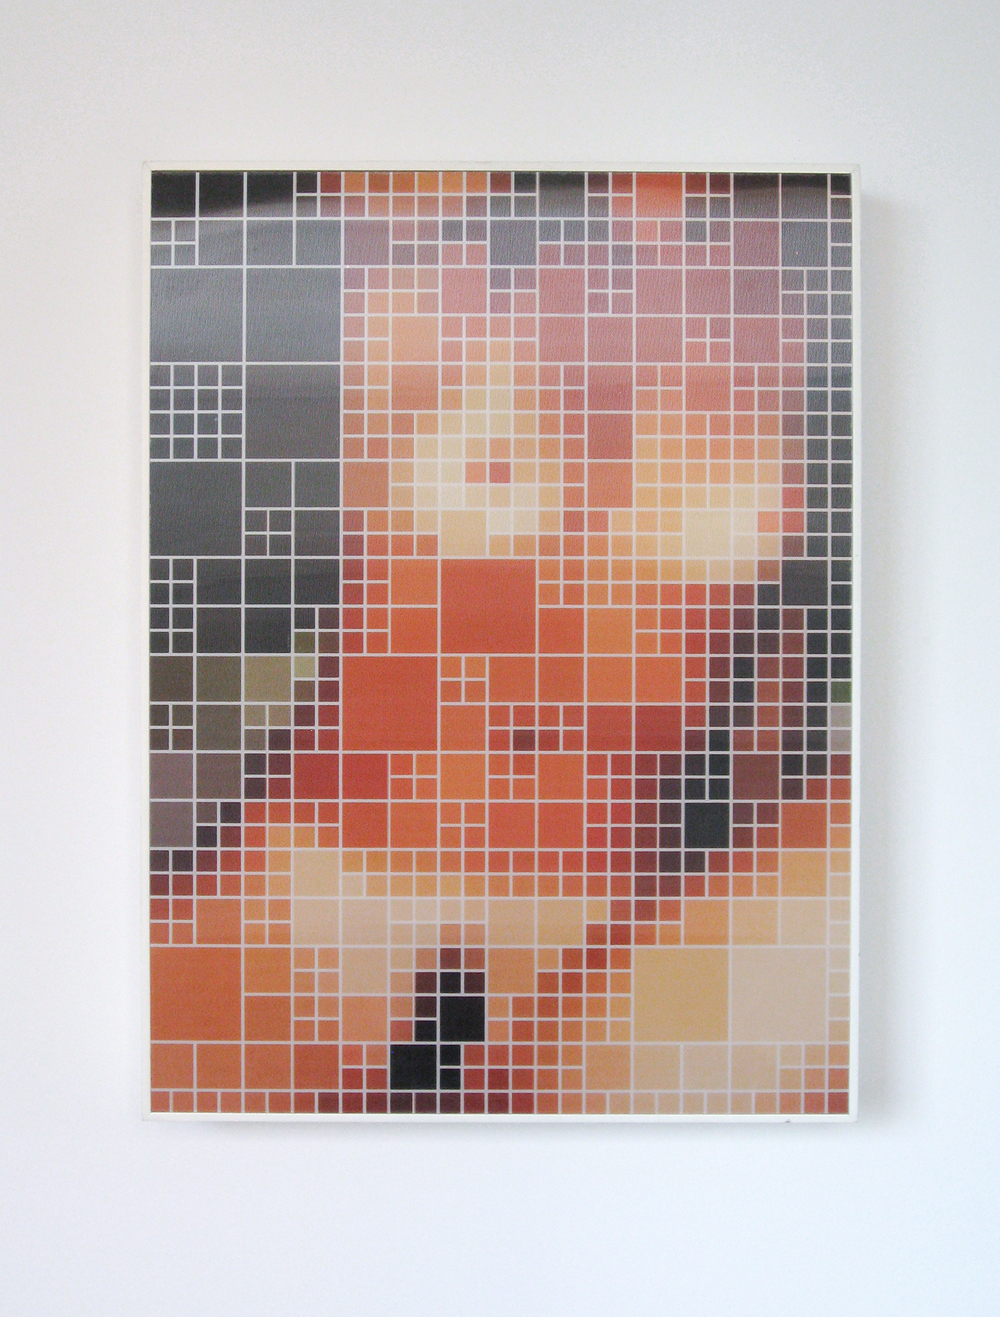 Binary Nude #1 •   2005 •   Photograph, lenticular print •   19.6   x 14.5 in   • (central point of view)